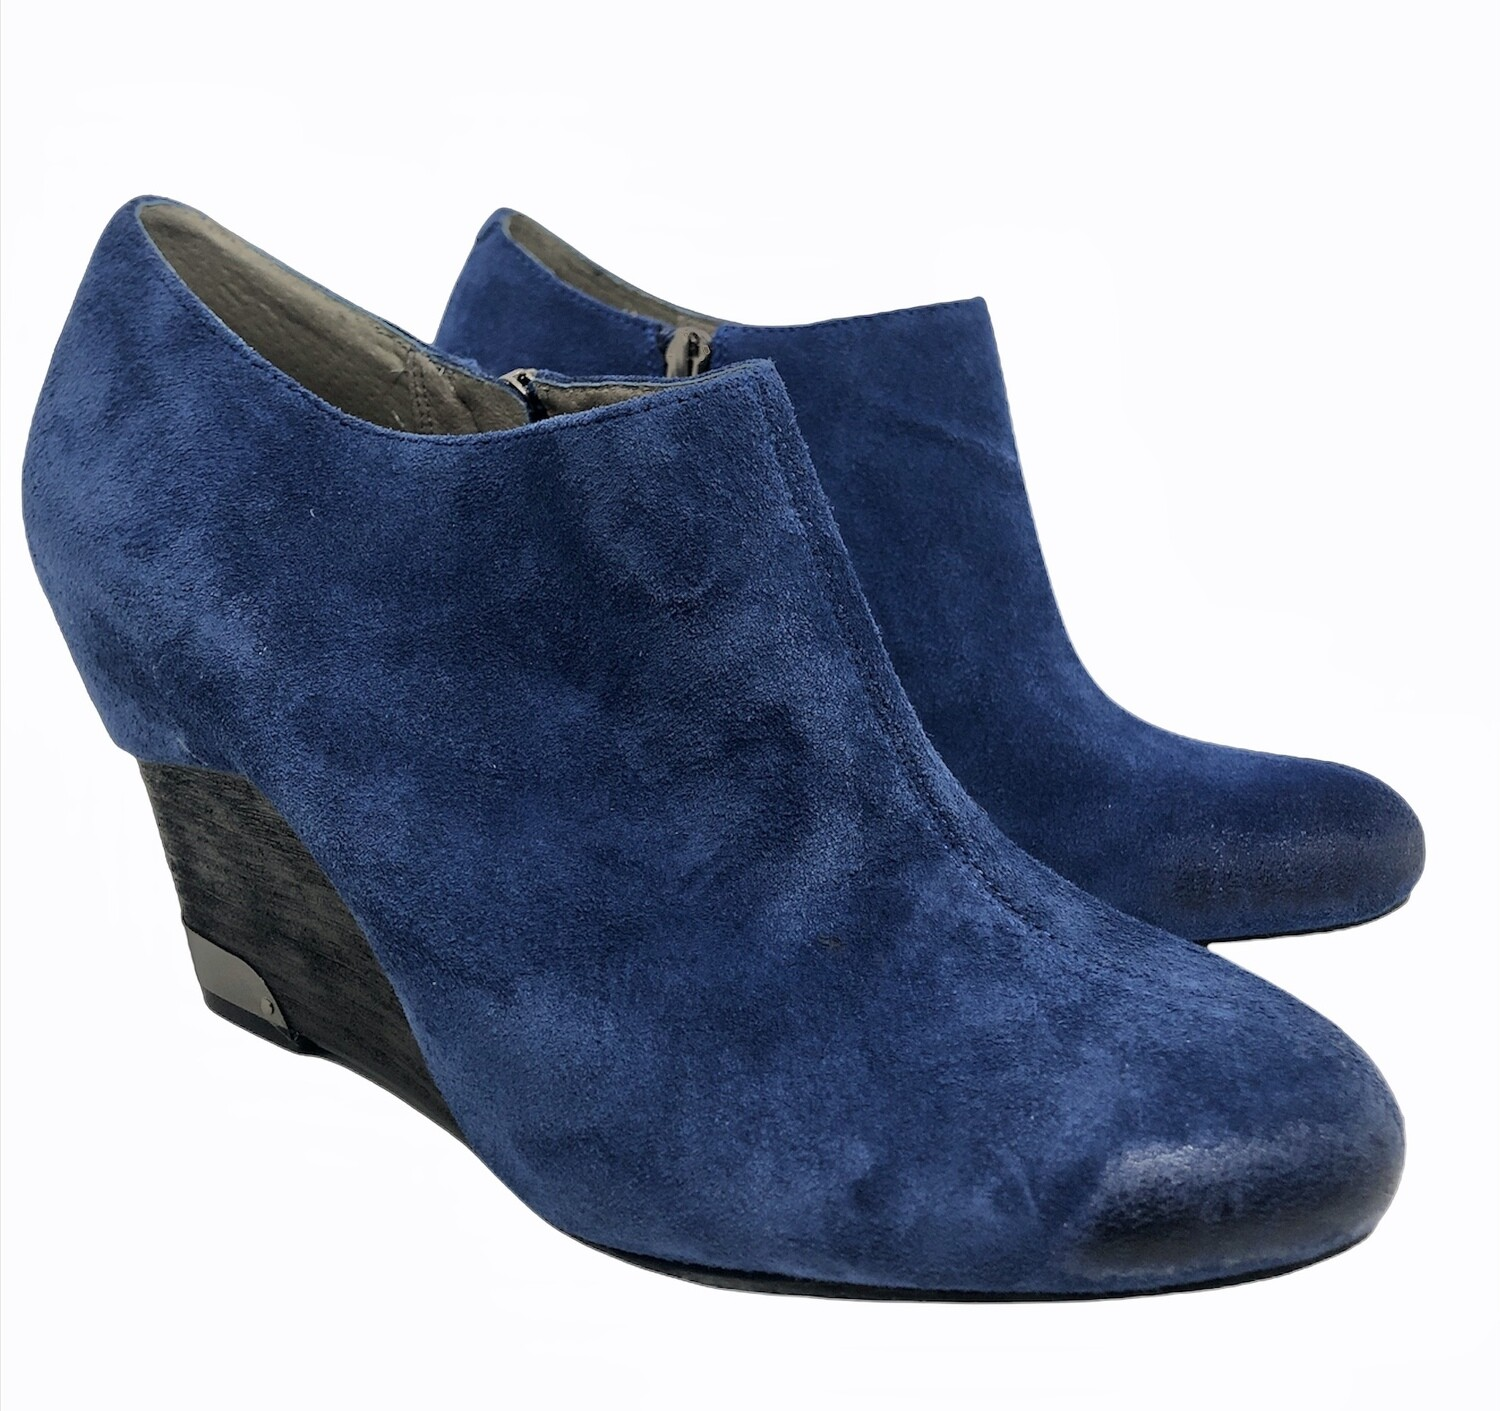 VINCE CAMUTO Hamil Wedge Bootie in Oxford Blue sz. 10